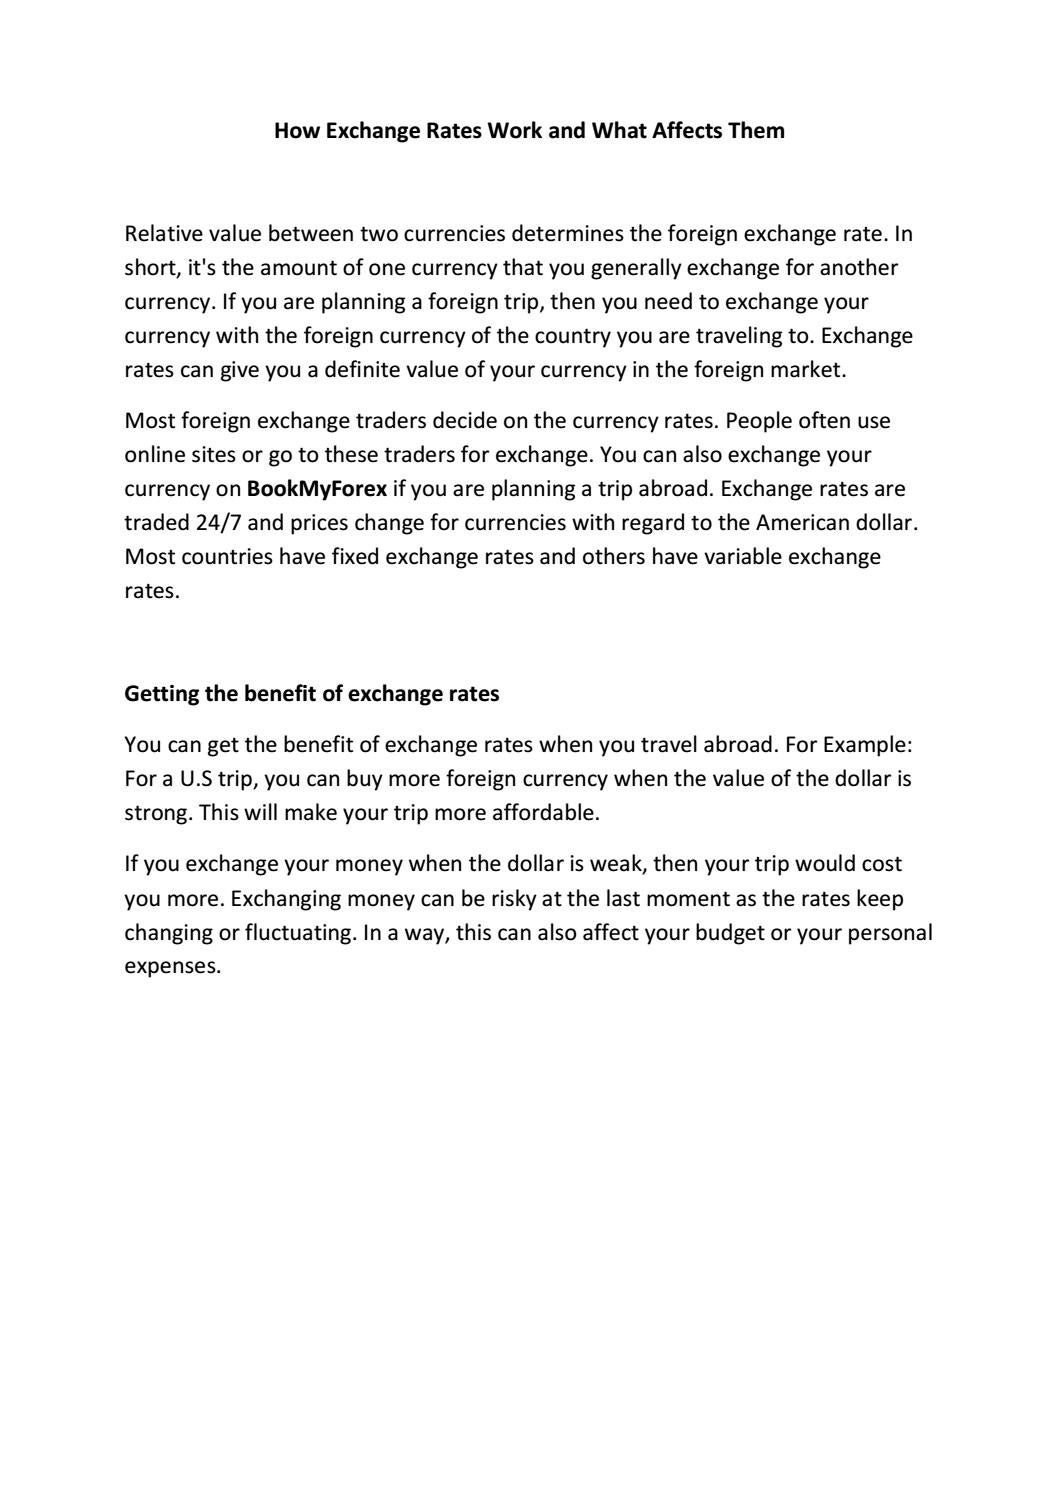 Exchange Rates Work And What Affects